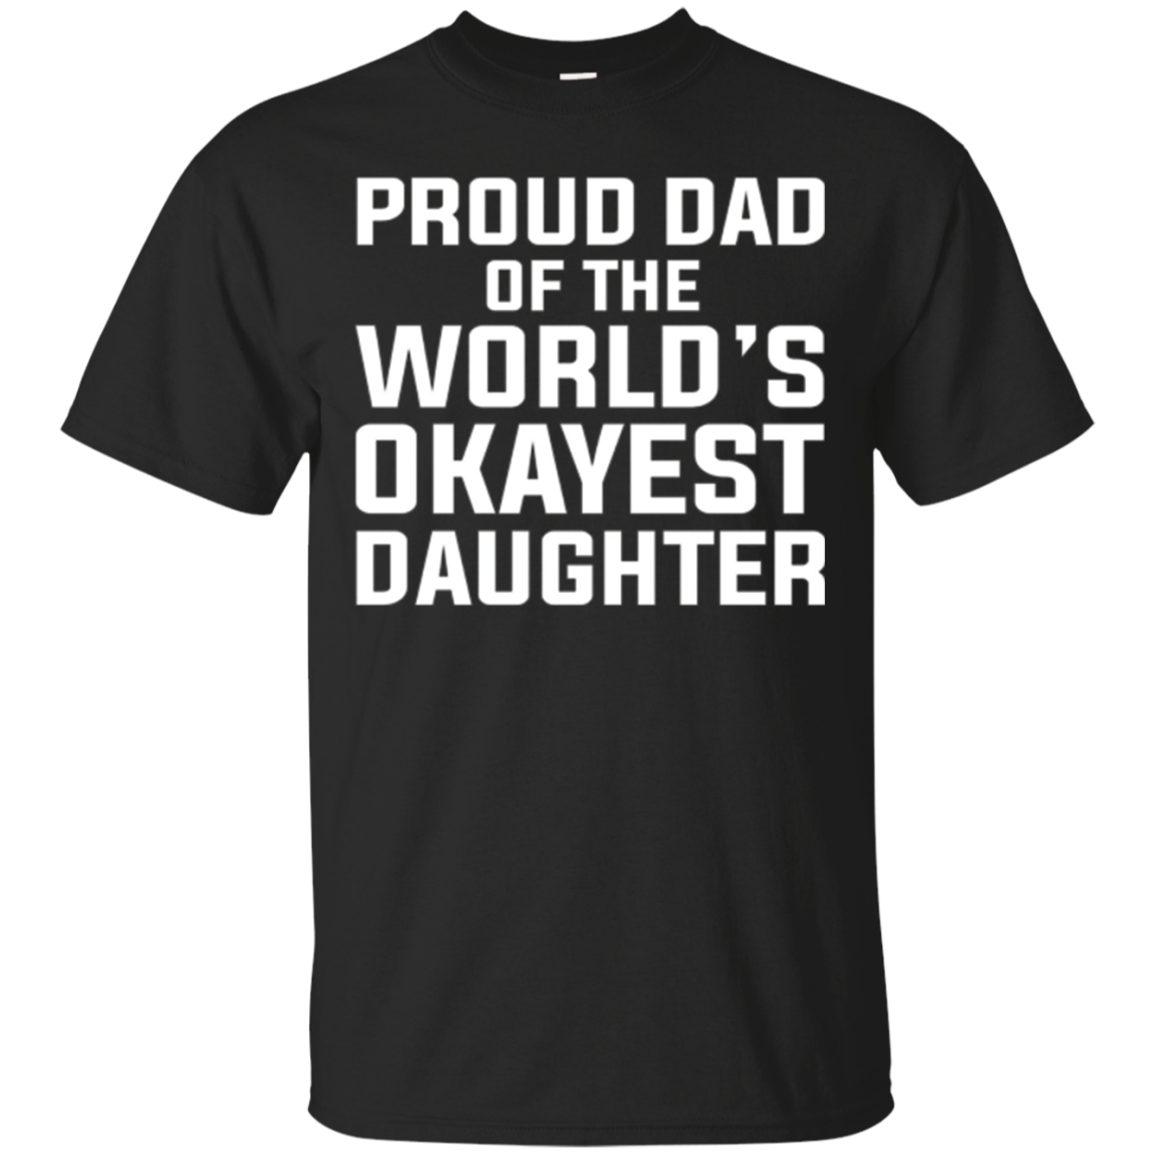 Mens Proud Dad of the World's Okayest Daughter - Funny Dad TShirt